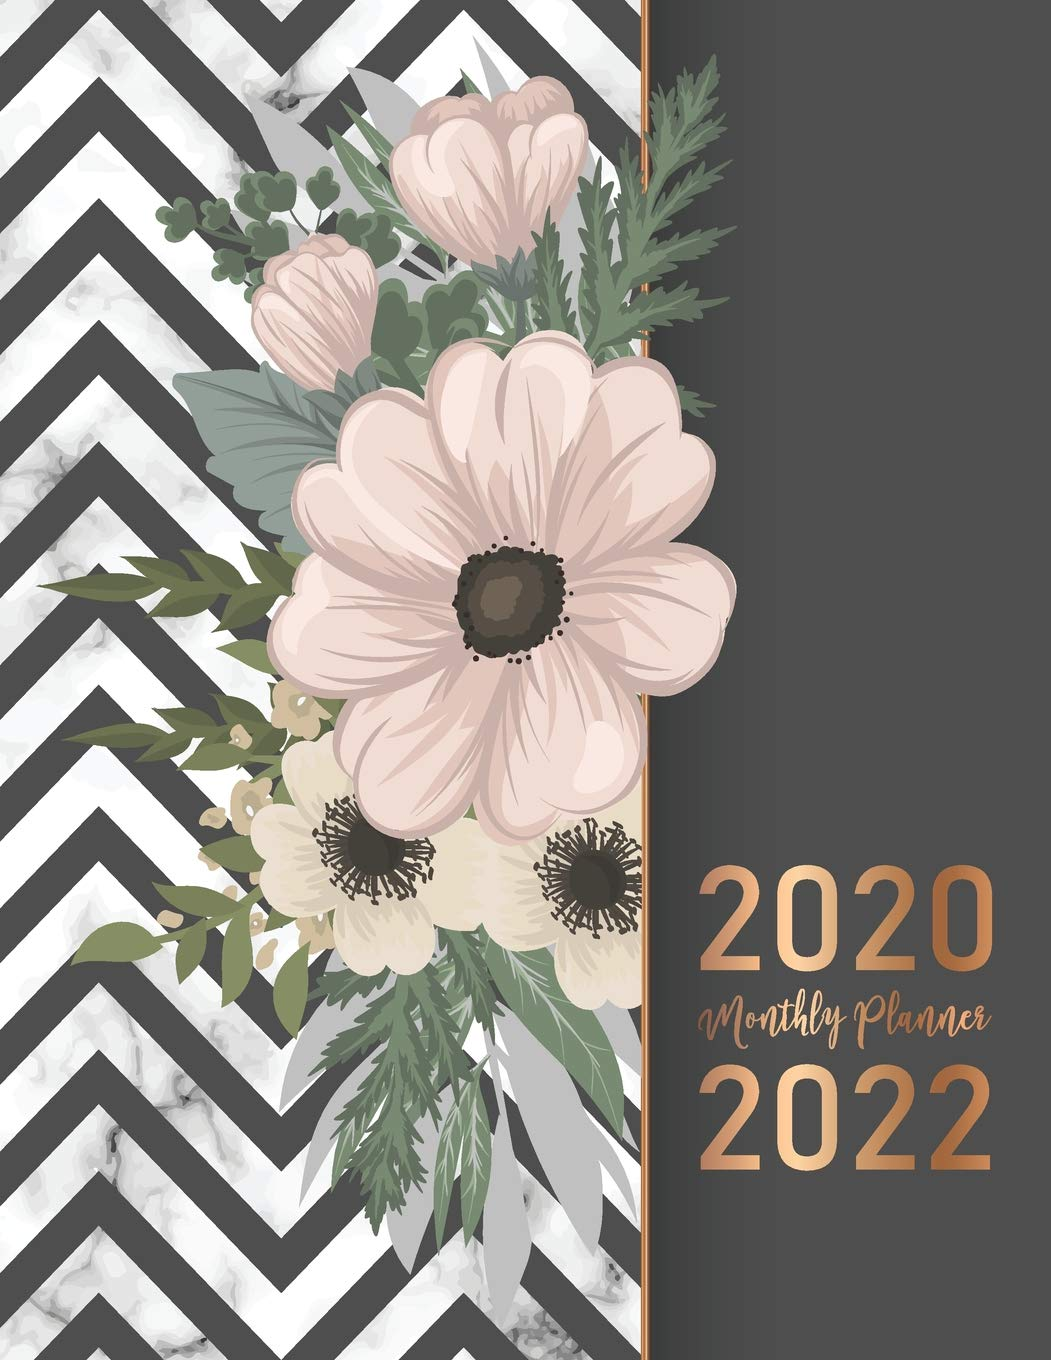 2022 Calendar Cover.Buy 2020 2022 Monthly Planner Elegant Marble Flower Cover 2020 2022 Three Year Planer With Holidays Agenda Yearly Goals Monthly Calendar 36 Months 36 Month Calendar Jan 2020 To Dec 2022